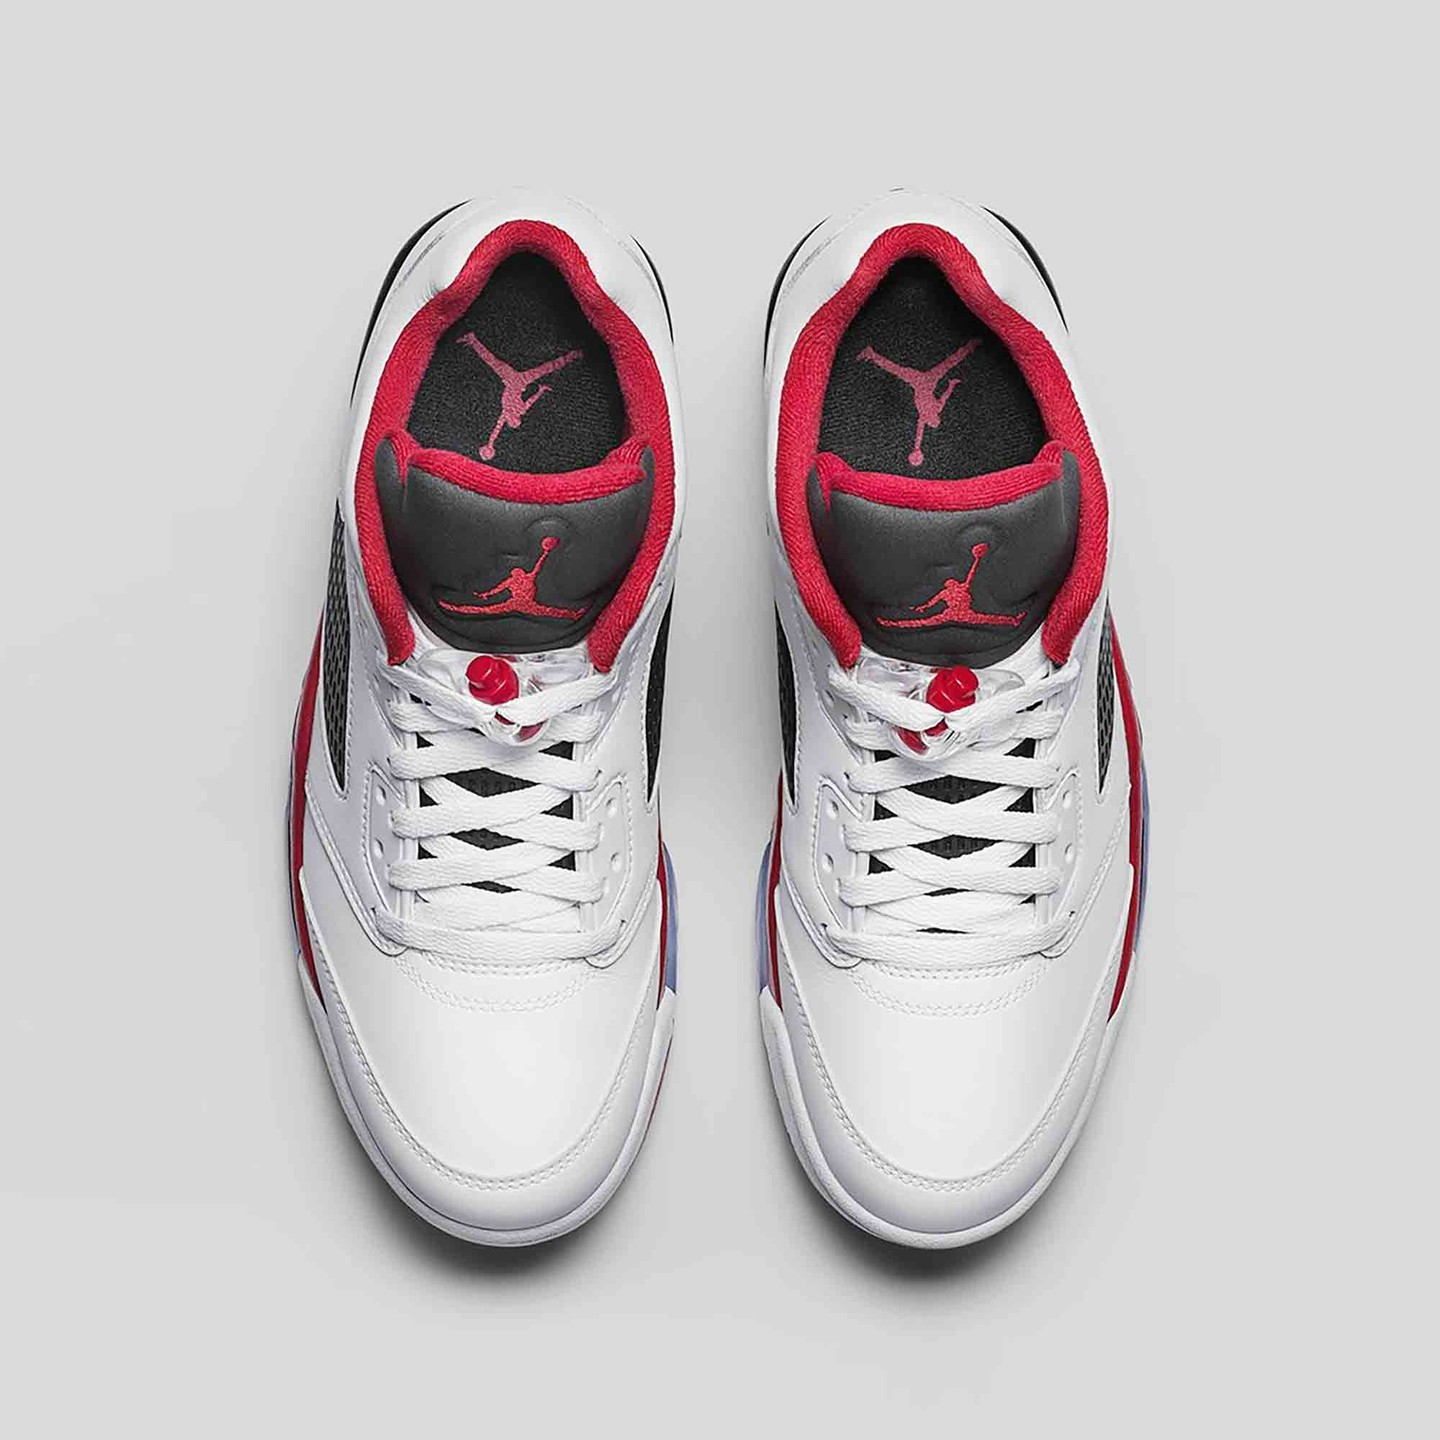 Jordan Air Jordan 5 Low Retro 'Fire Red' White / Fire Red / Black 819171-101-44.5